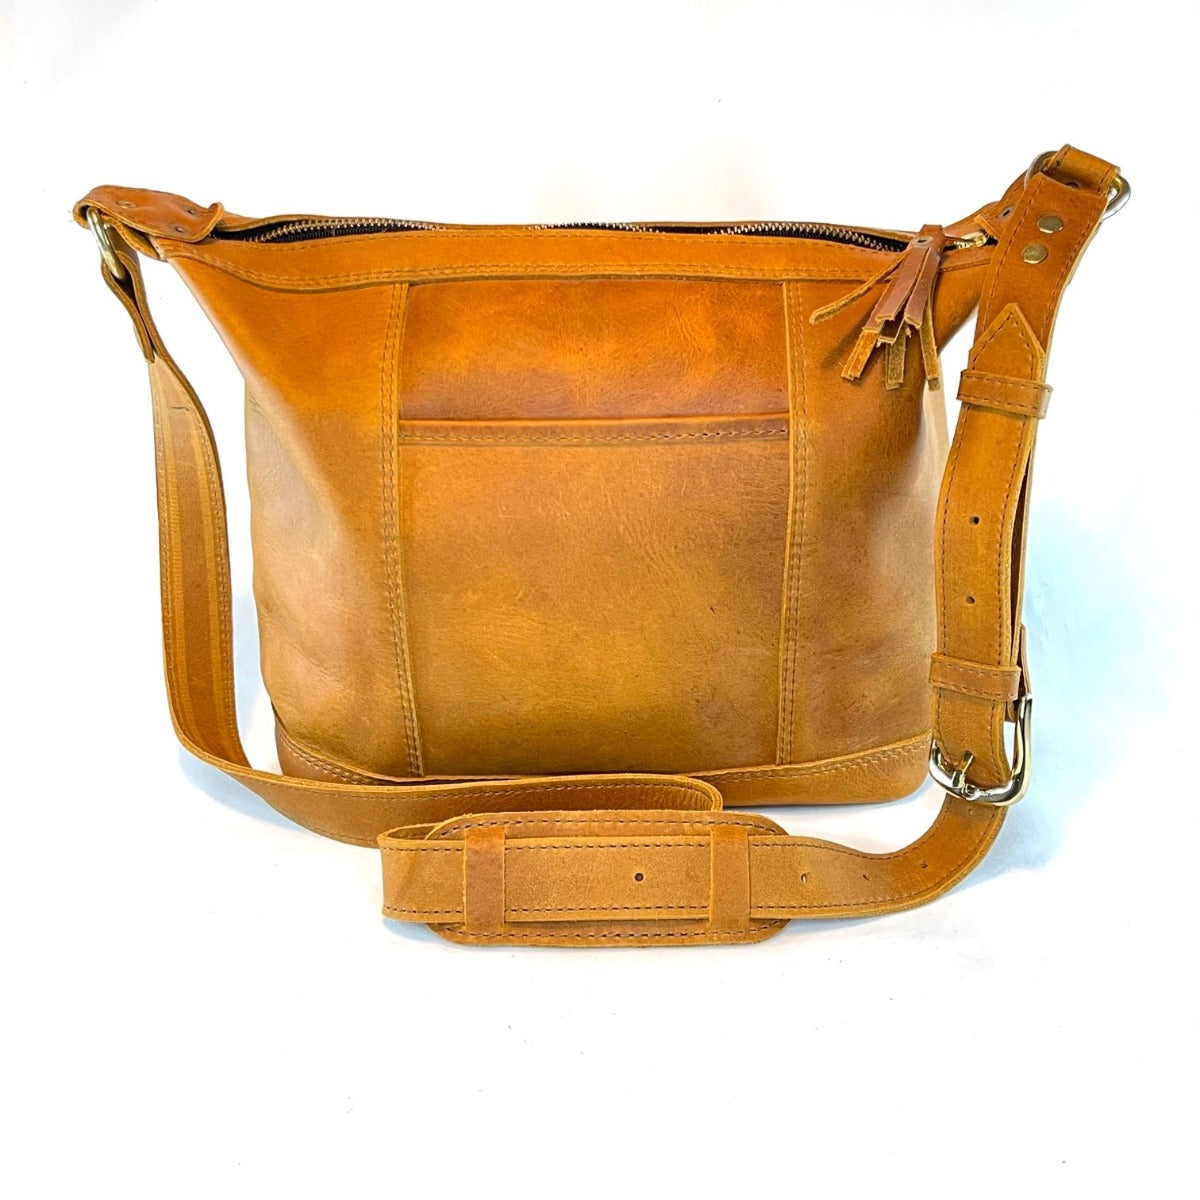 Canela Tan Leather Mini Bag